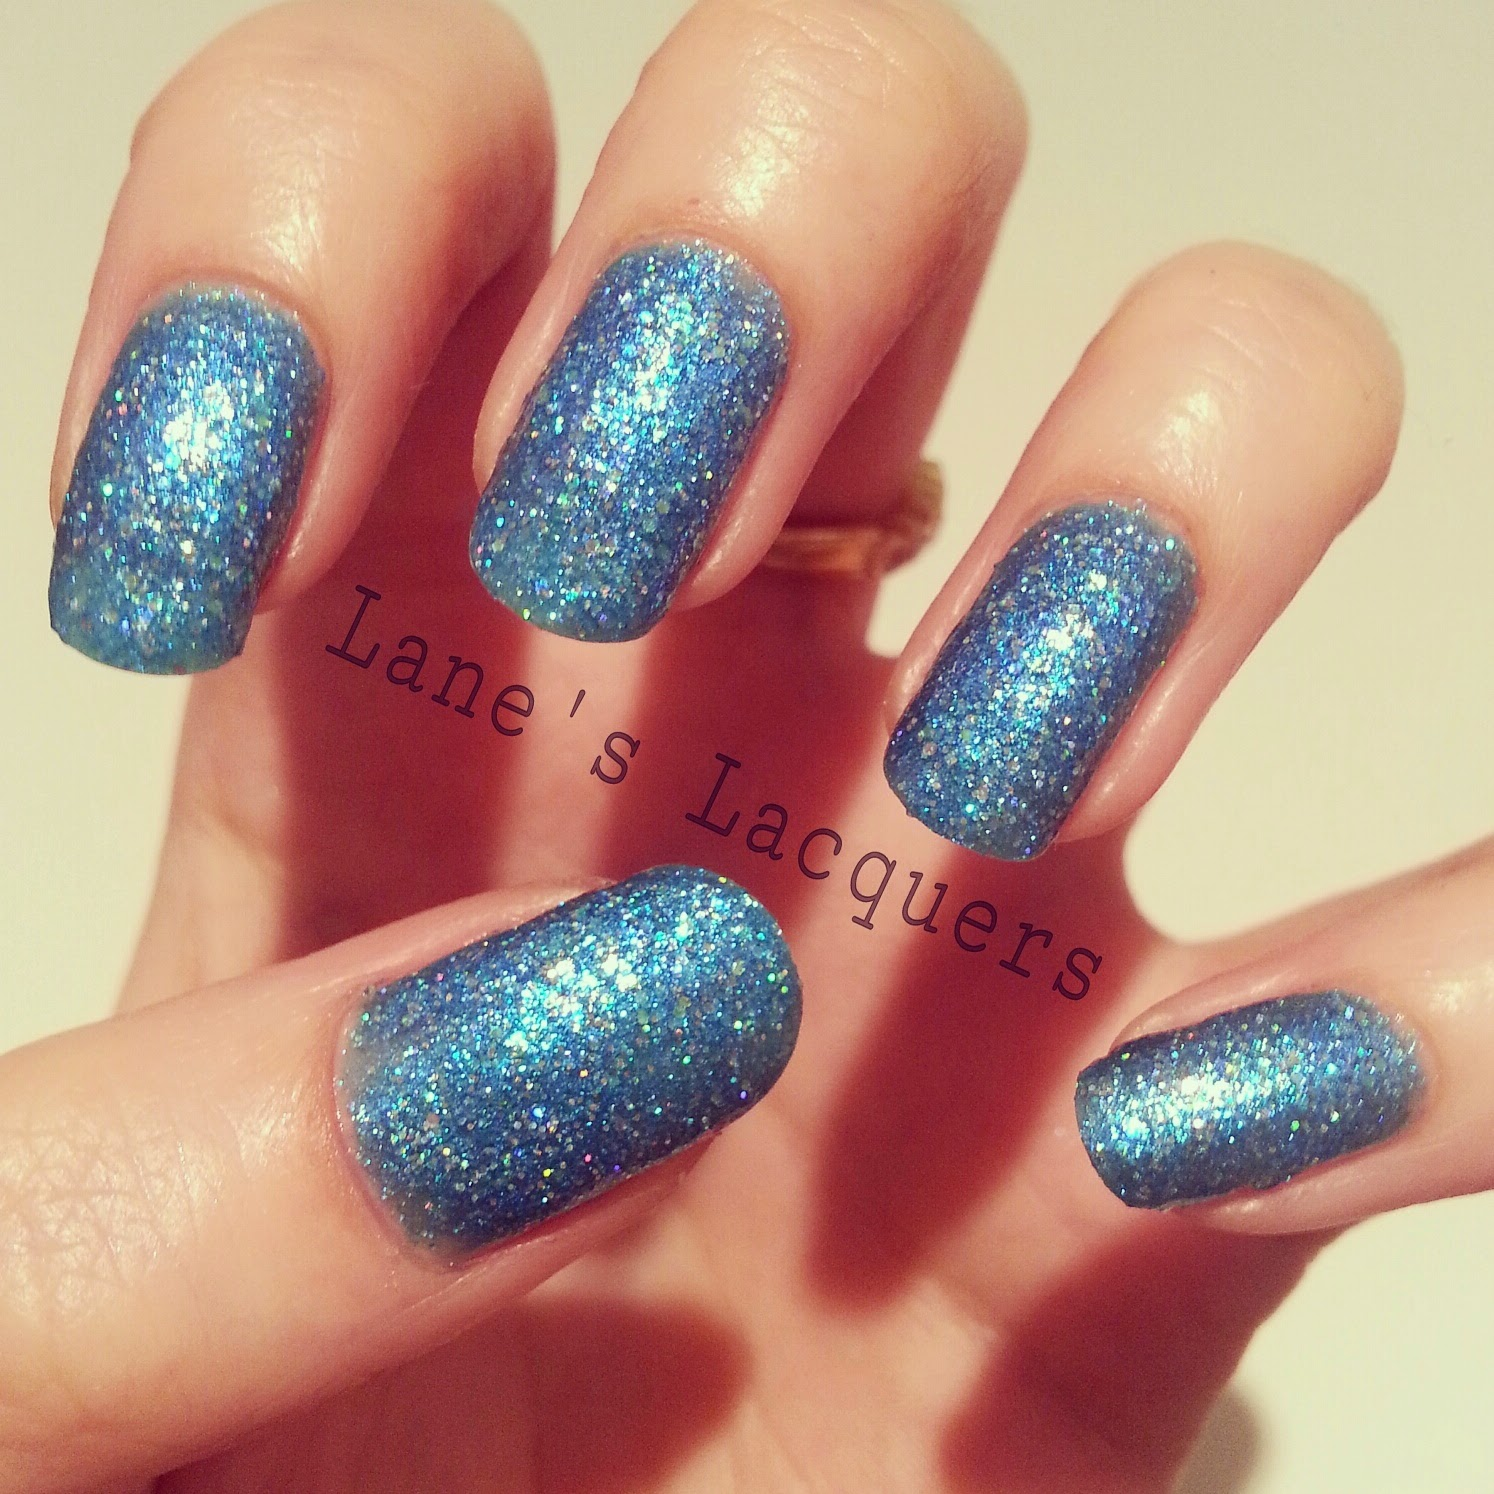 new-barry-m-glitterati-vip-swatch-manicure